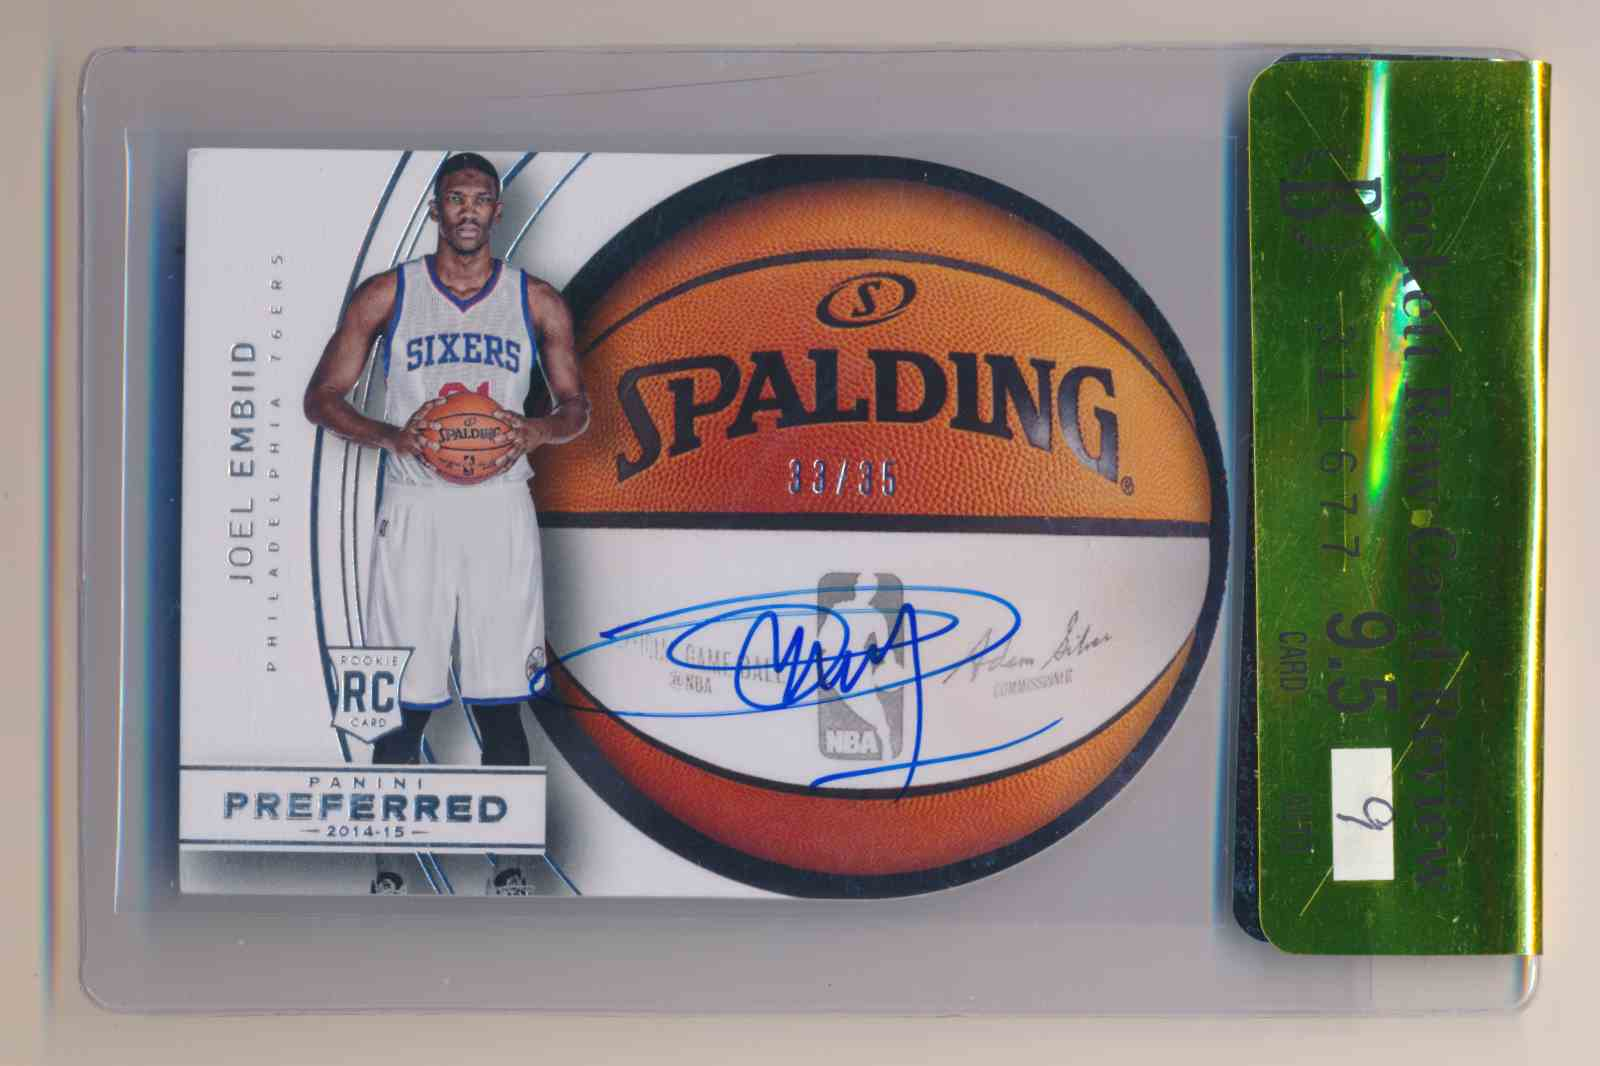 2014-15 Panini Preferred Joel Embiid BGS 9.5 9 Auto #21 card front image